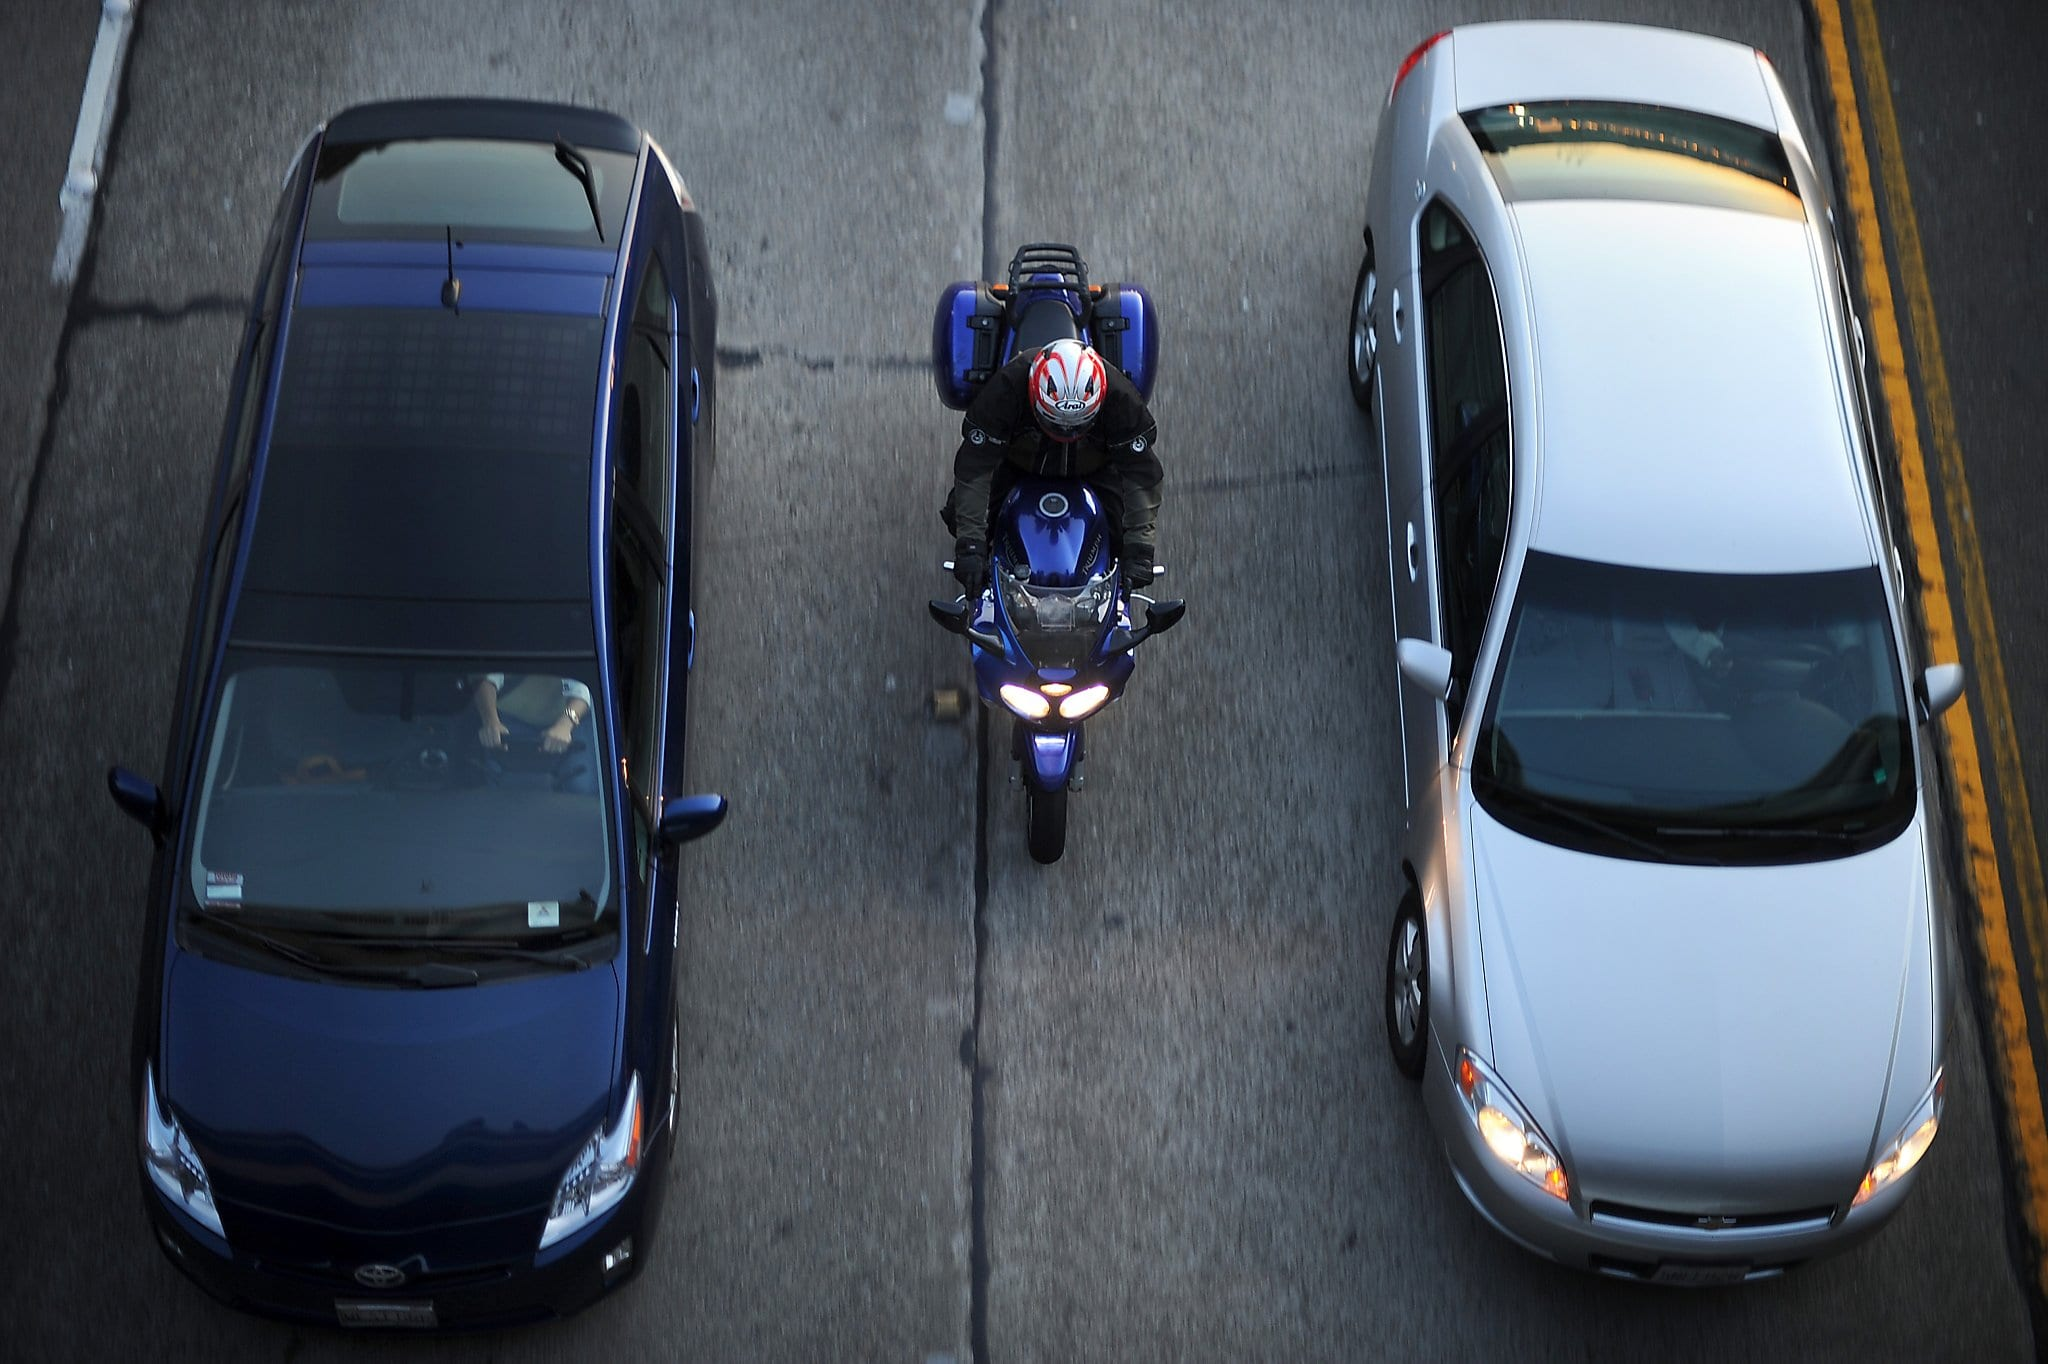 California Lane Splitting Legalized